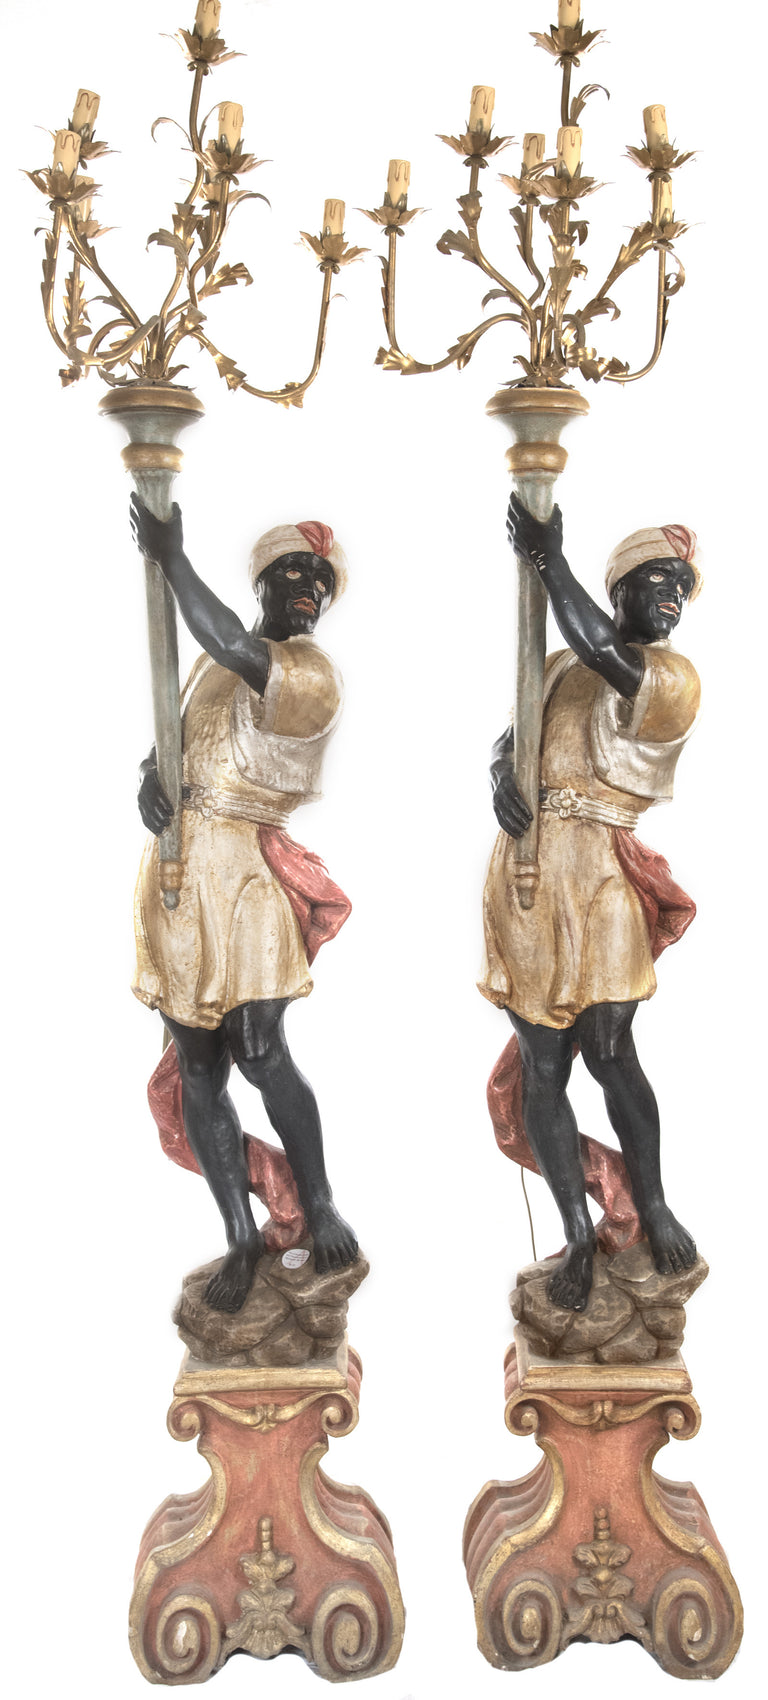 Pair of Venetian Polychrome Blackamoor Floor Torchieres